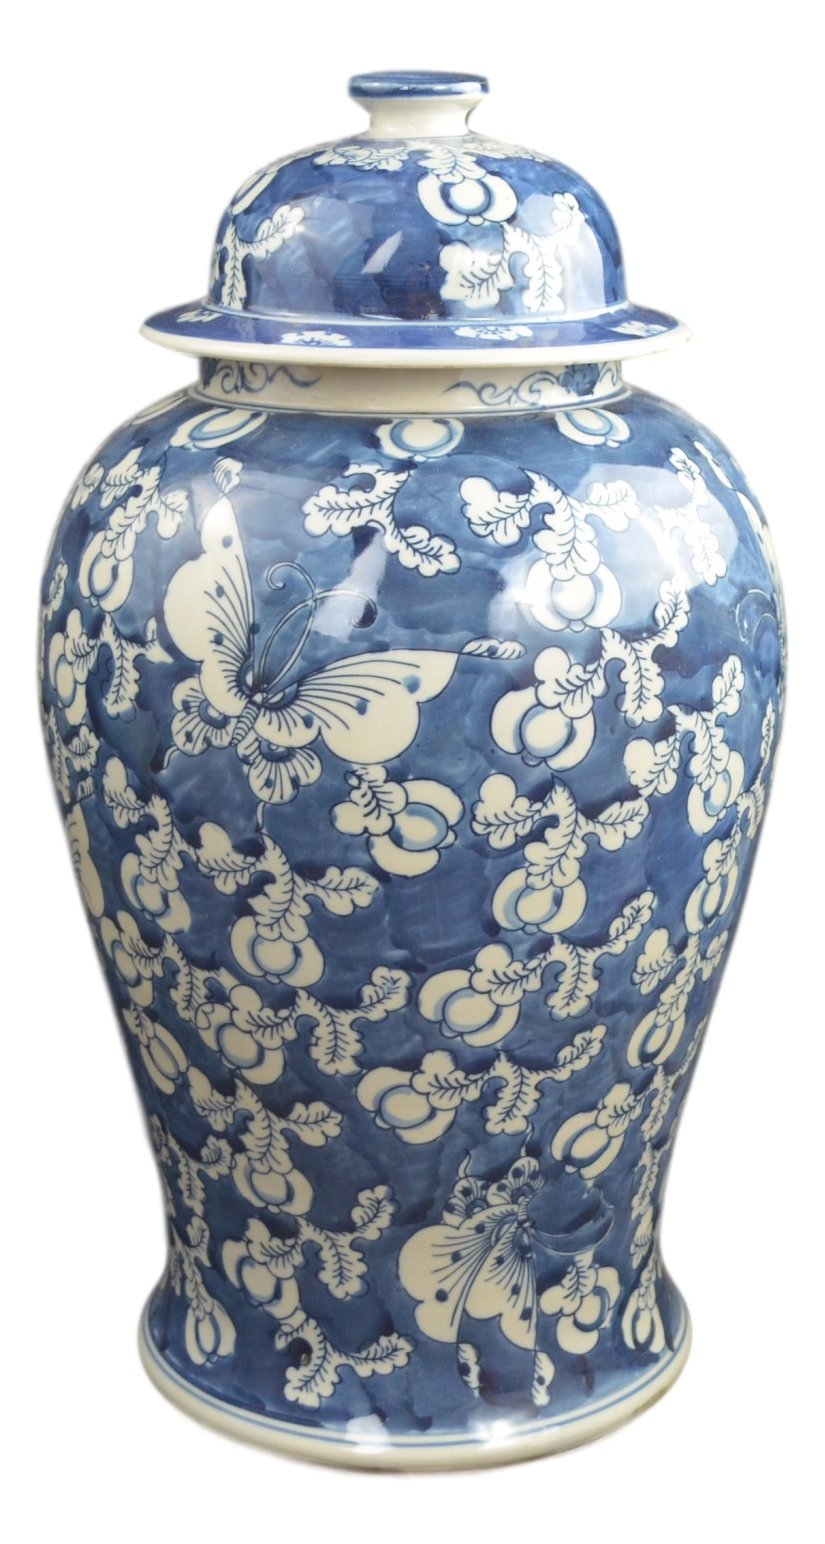 19'' Antique Finish Blue and White Porcelain Blue Butterfly Temple Ceramic Jar Vase, China Ming Style, Jingdezhen (L1)